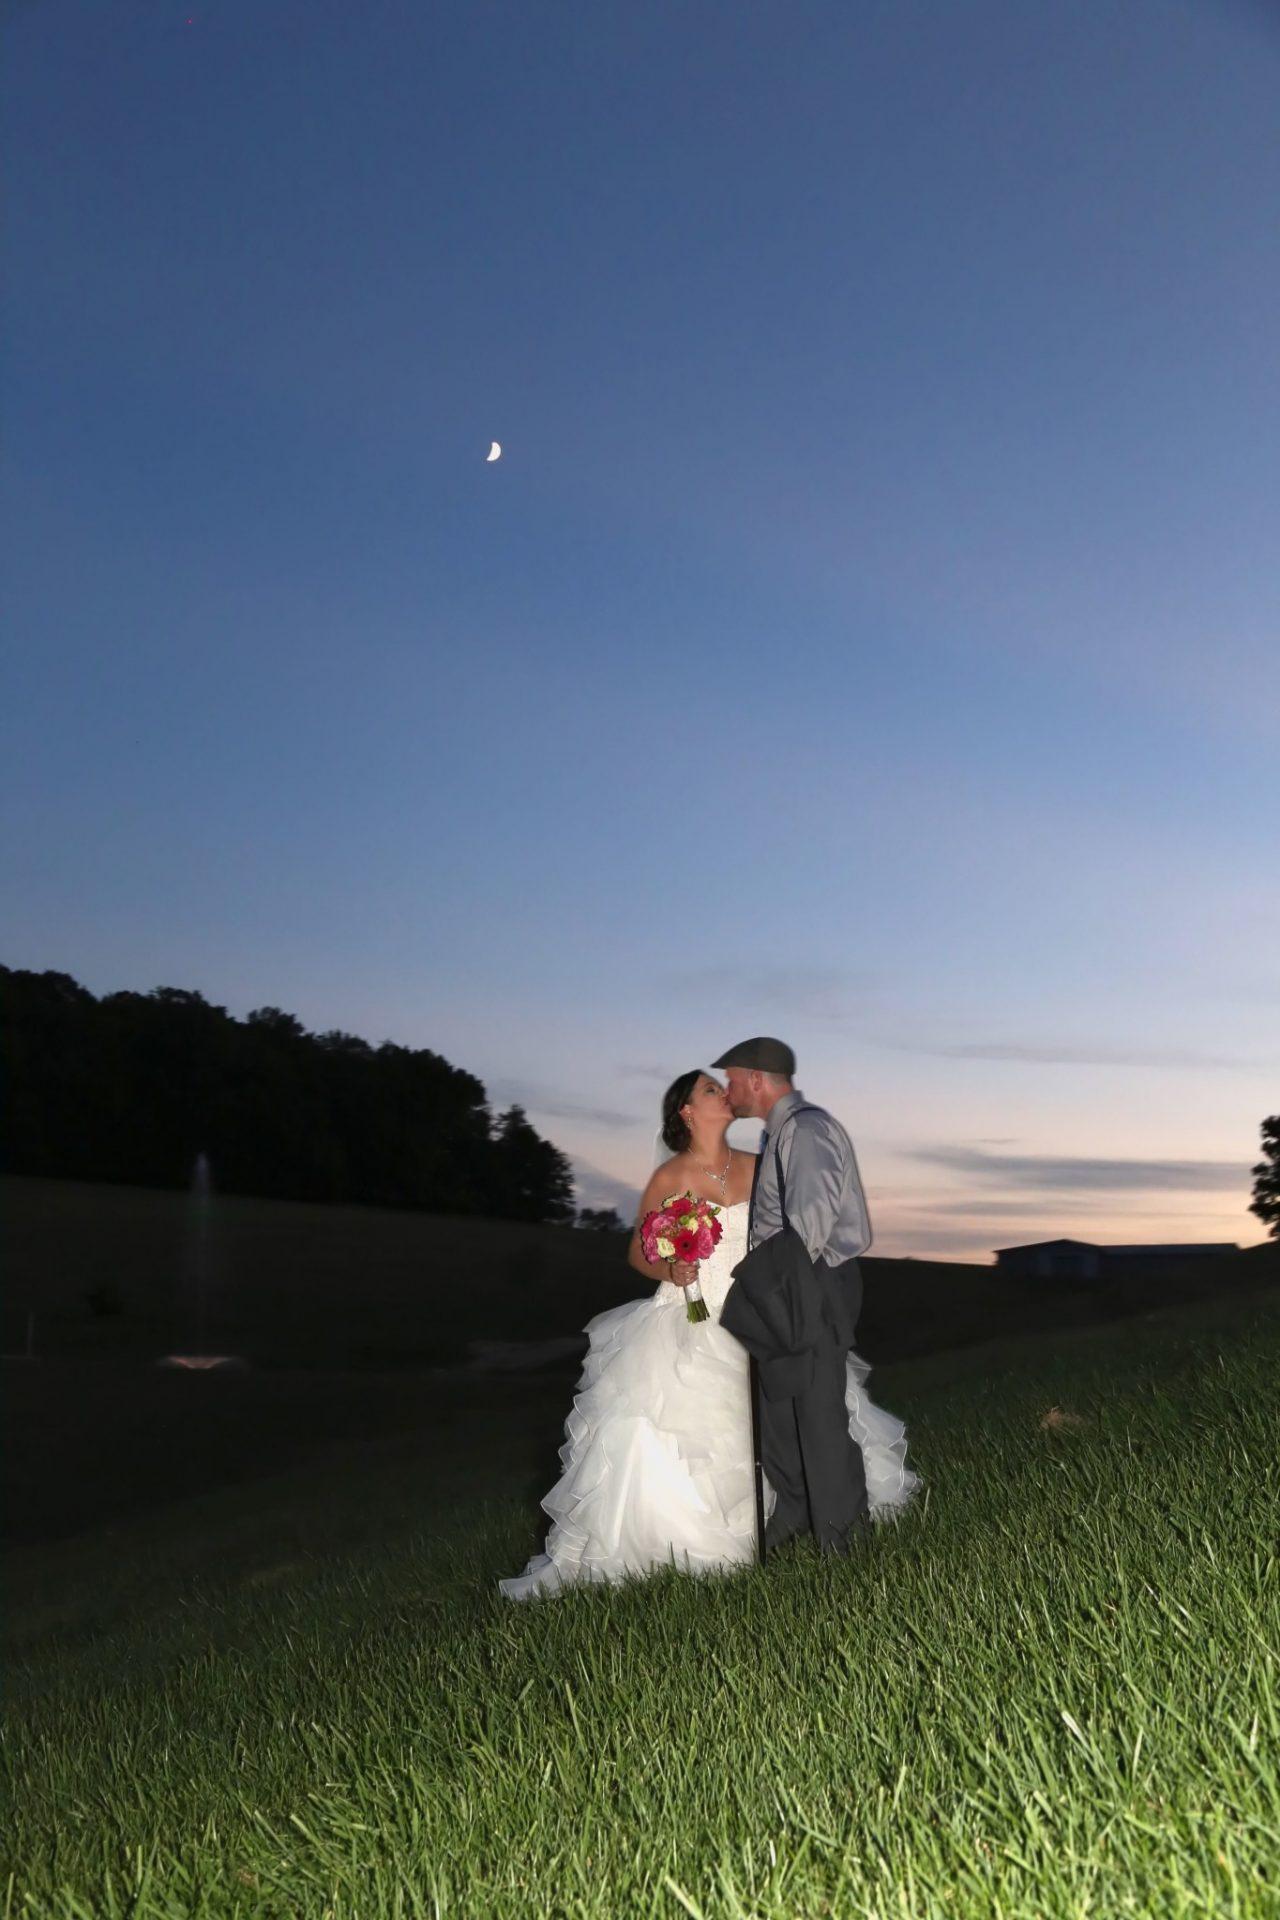 Bride and groom kiss as sunsets after gorgeous maryland wedding